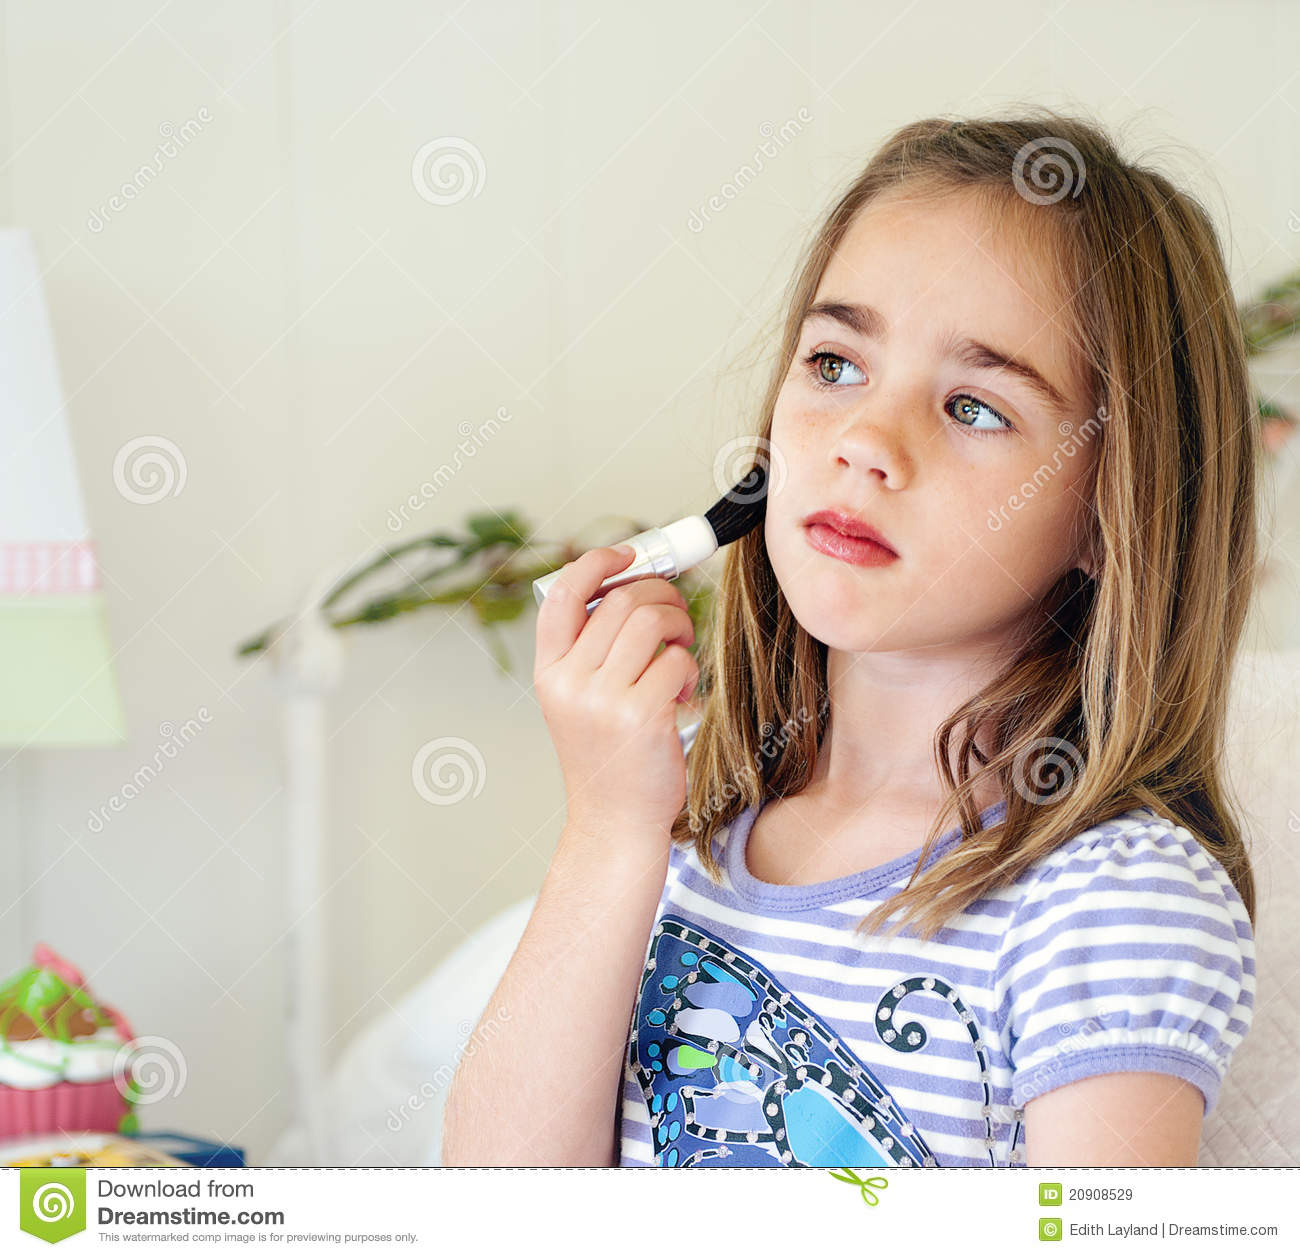 Little Girl Makeup Royalty Free Stock Images - Image: 20908529